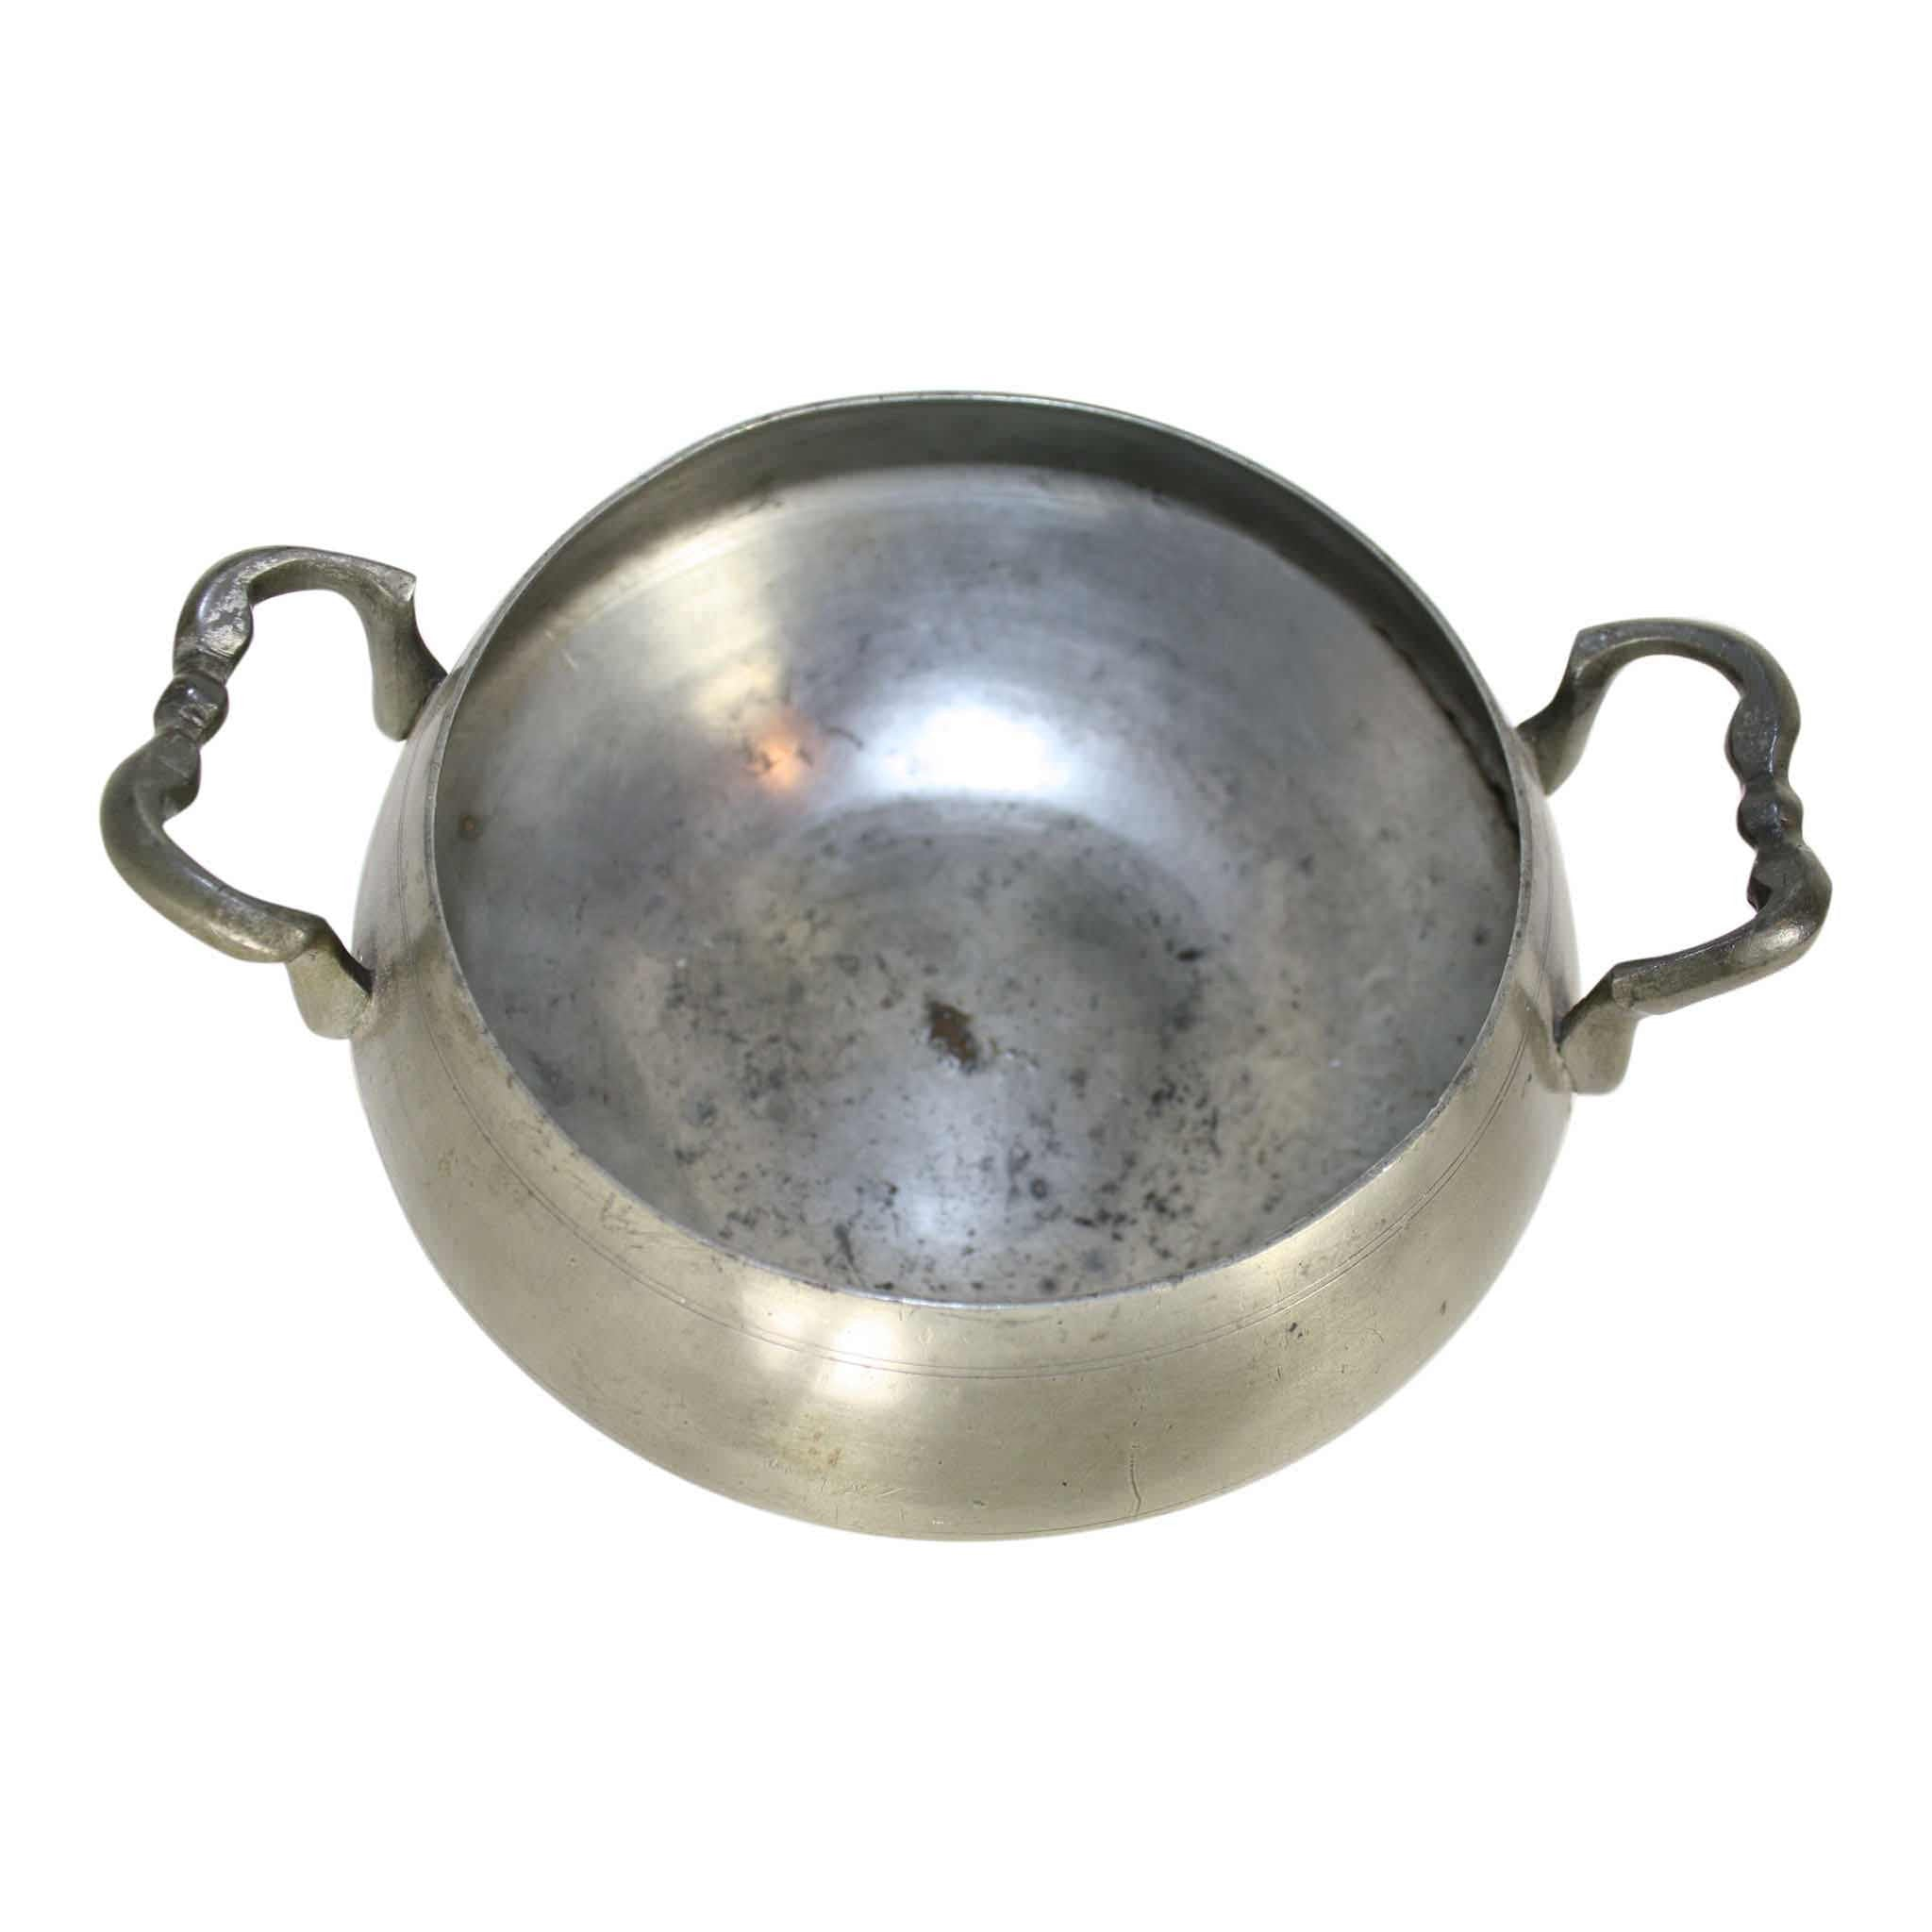 Soup Tureen with Ladle